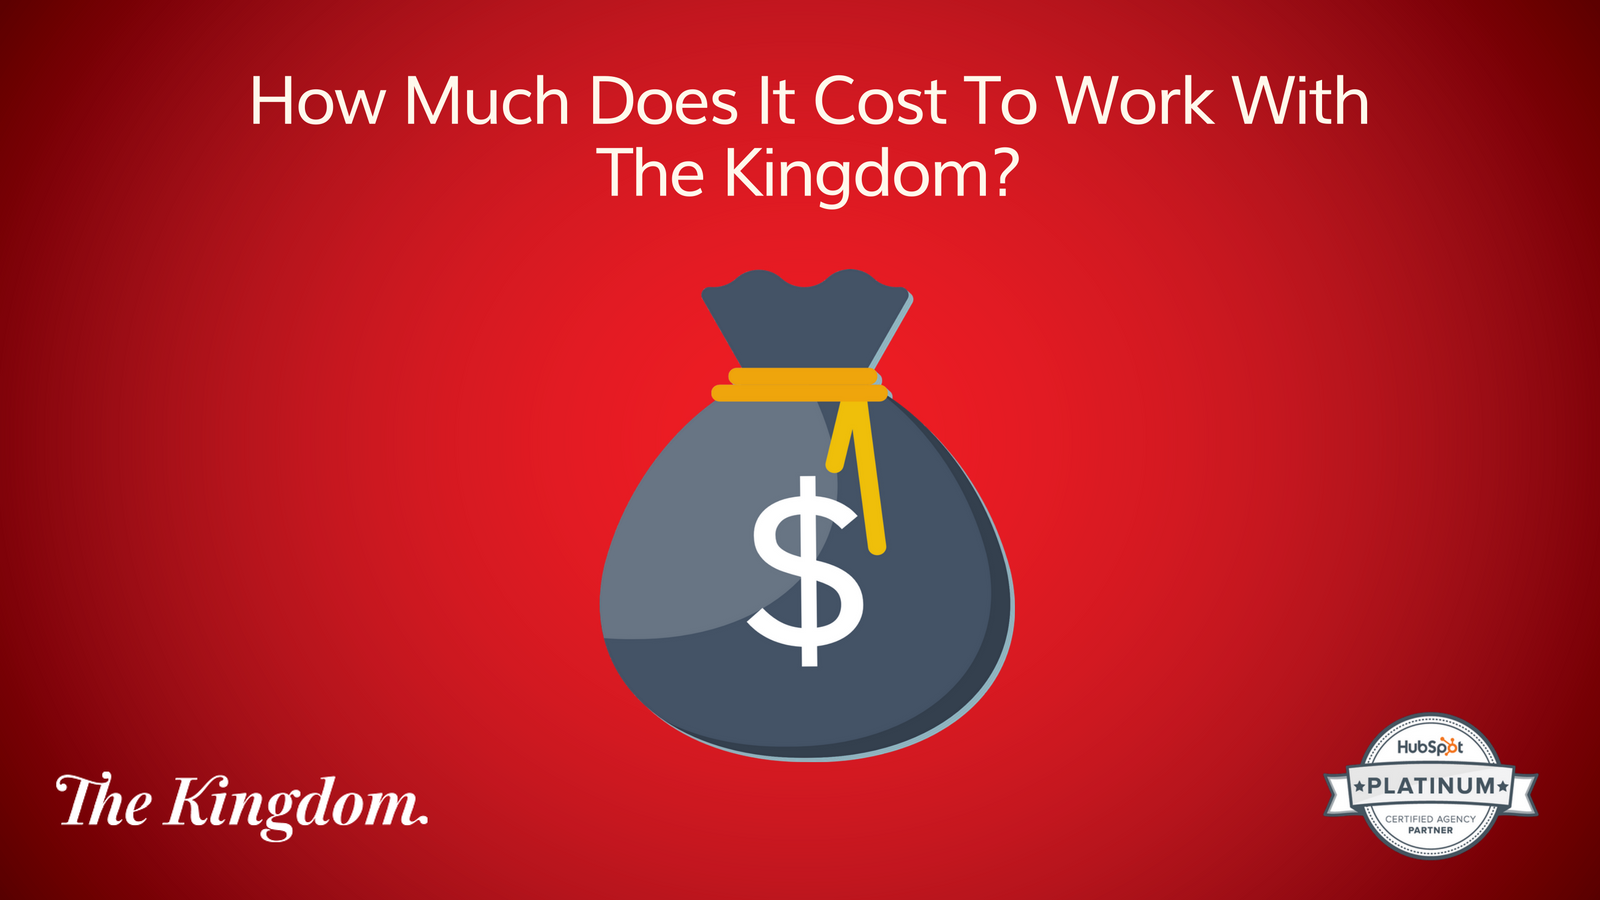 The Kingdom How Much Does it cost?